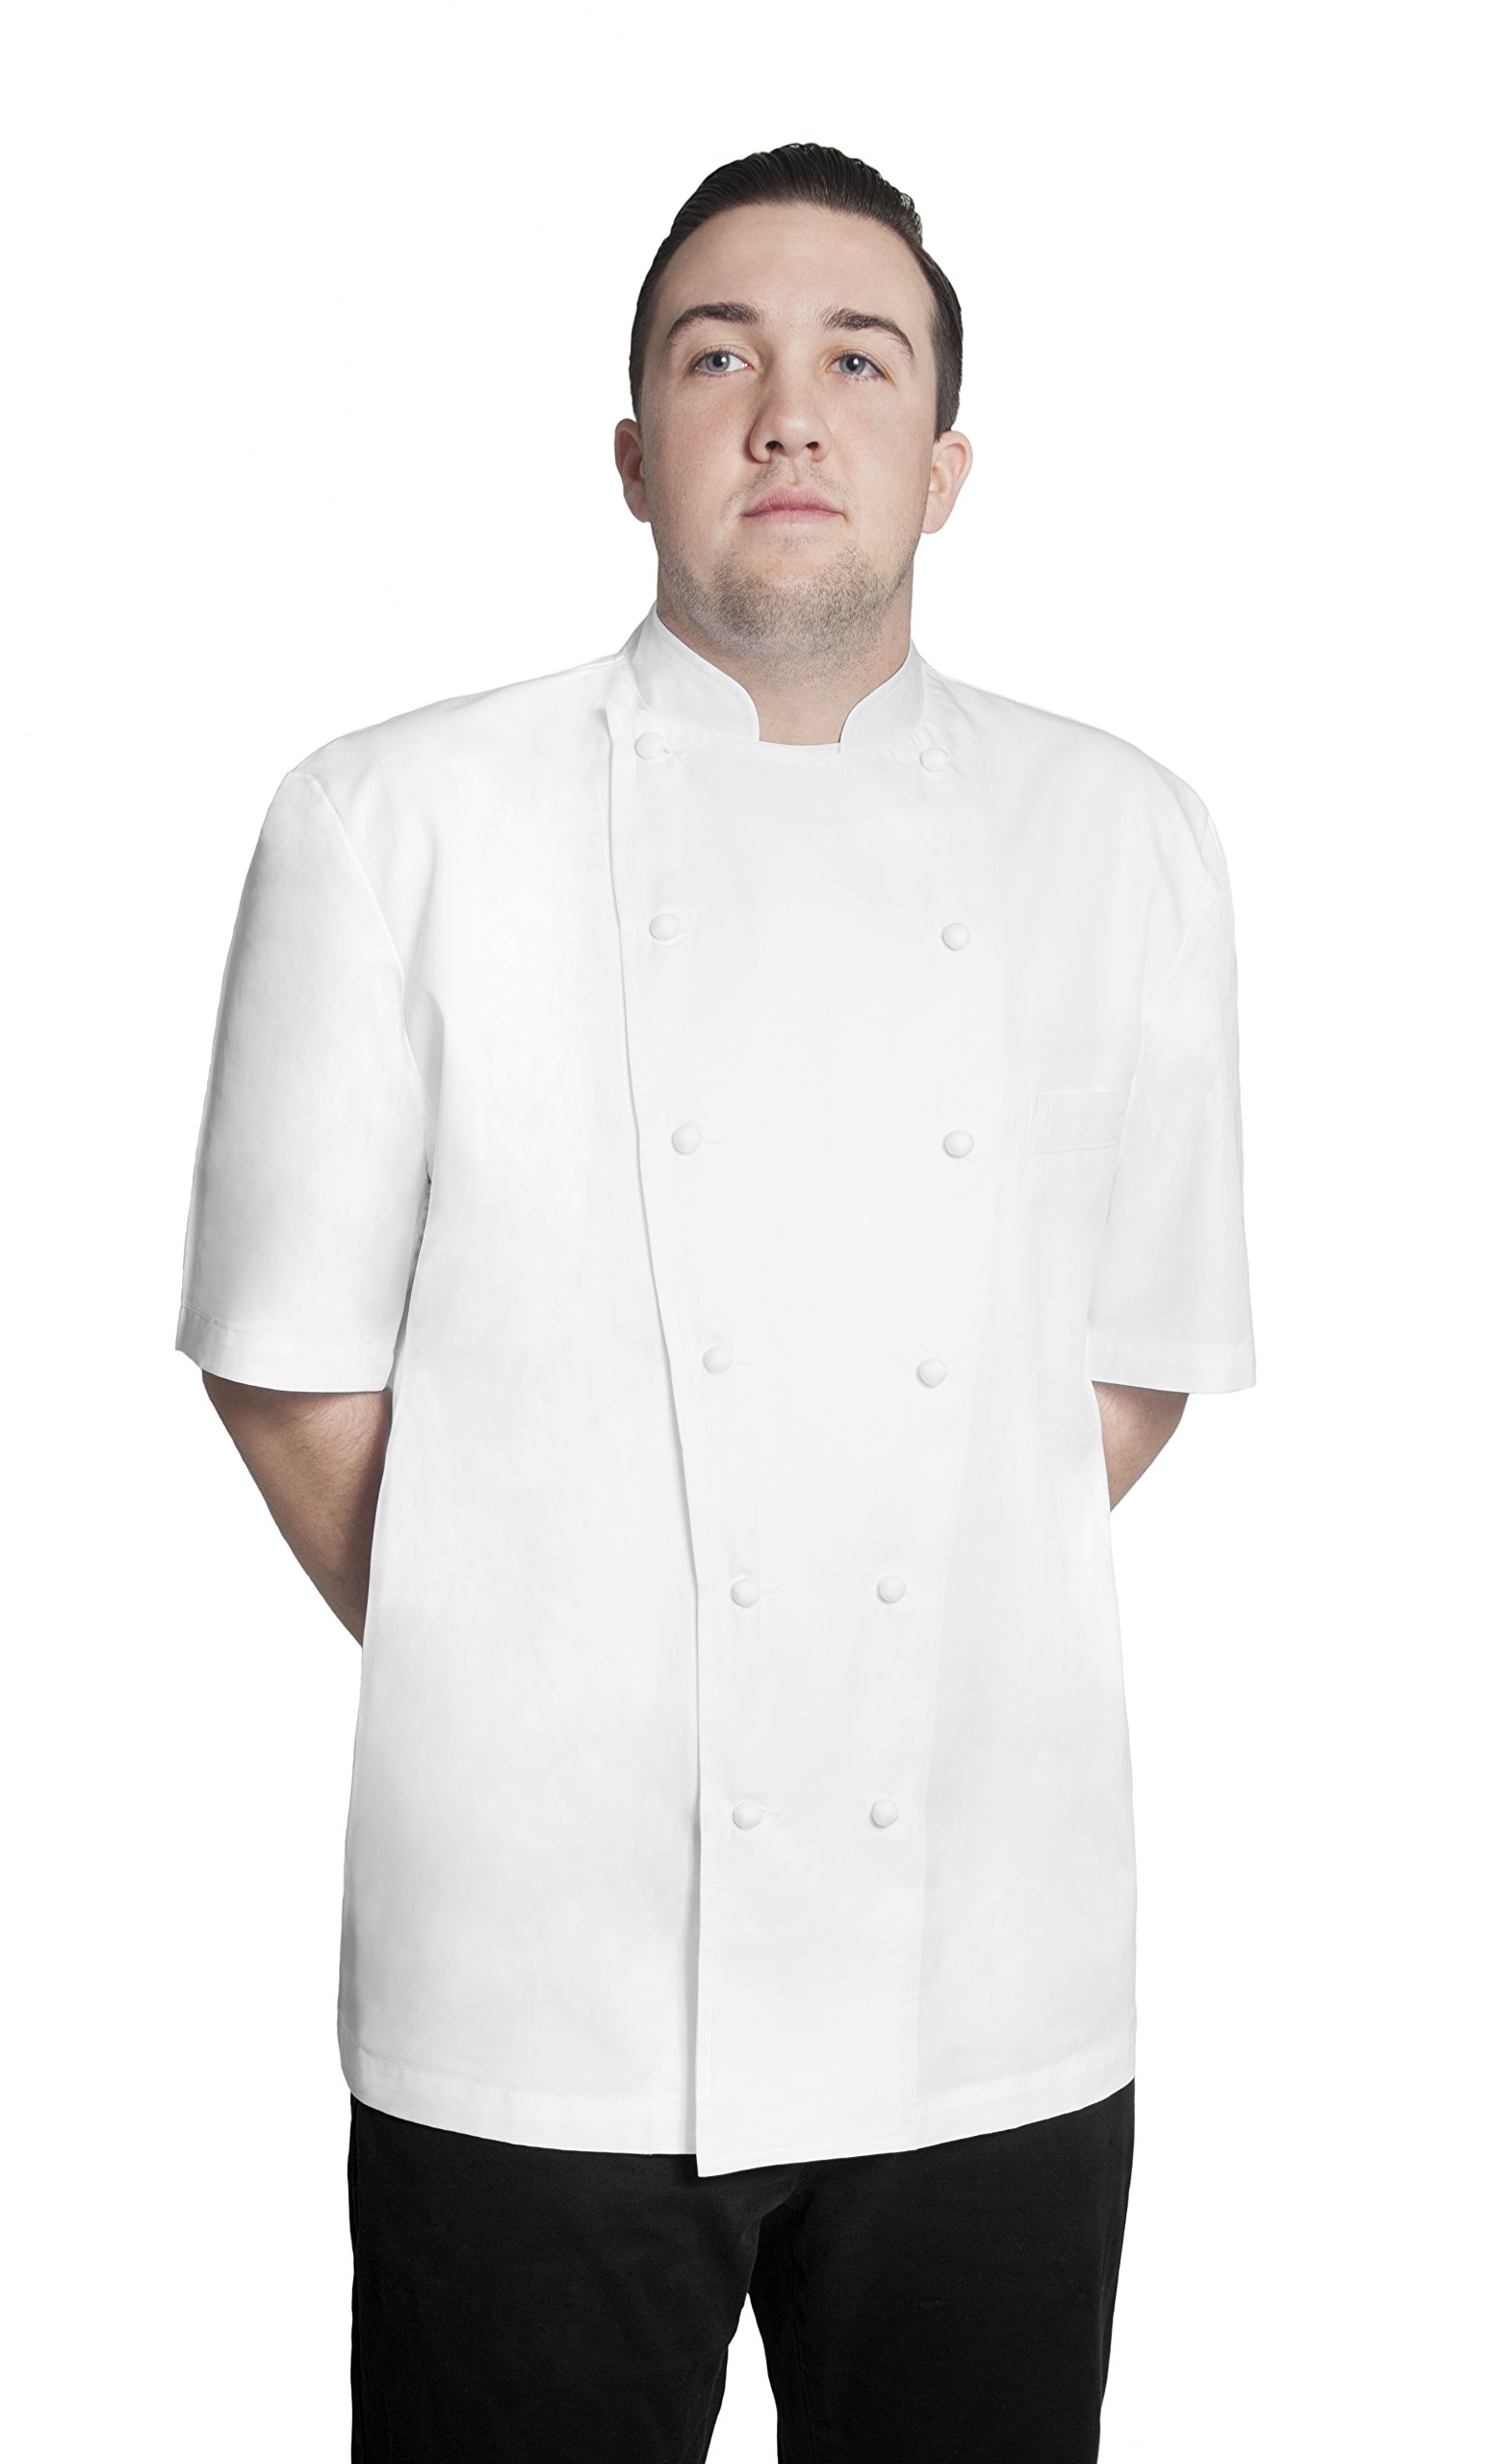 Bragard Grand Chef Jacket Short Sleeve with Chest Pocket Pima Cotton - White | Sizes 44 |